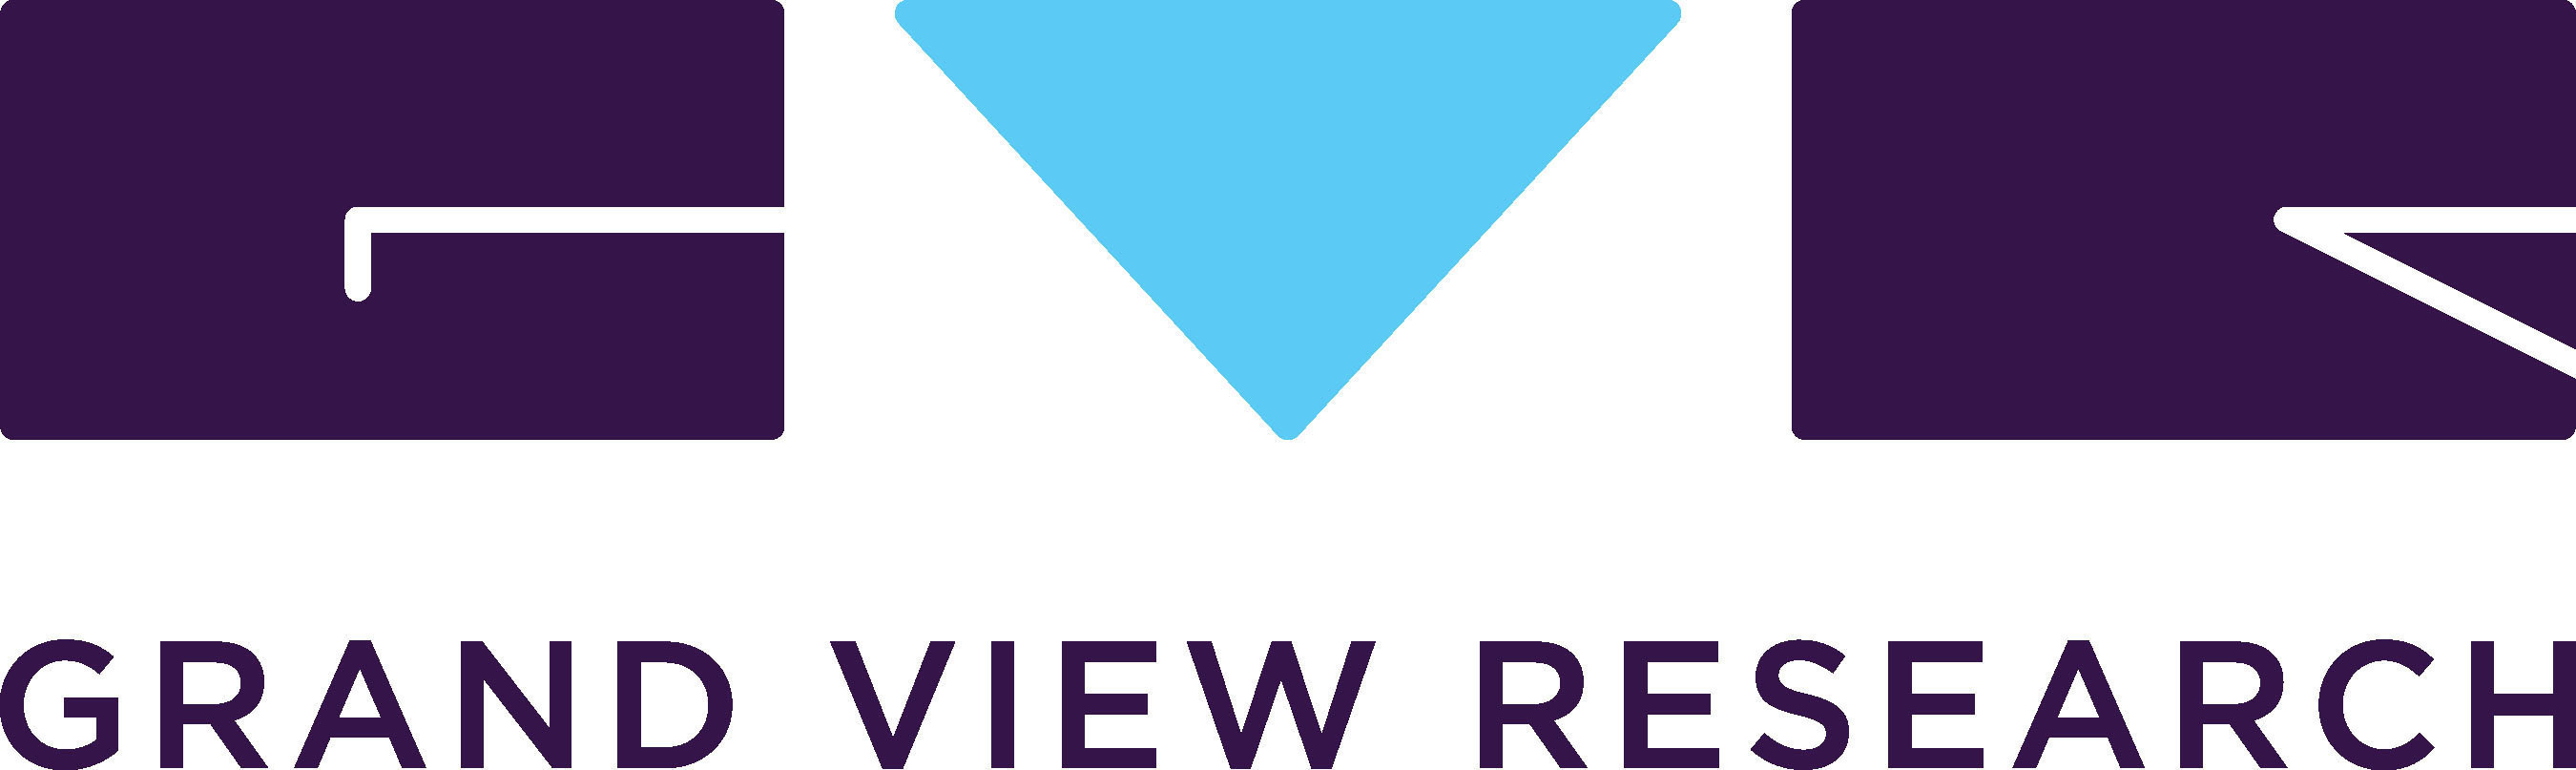 Synthetic Paper Market Size To Reach $454.5 Million By 2024: Grand View Research, Inc.